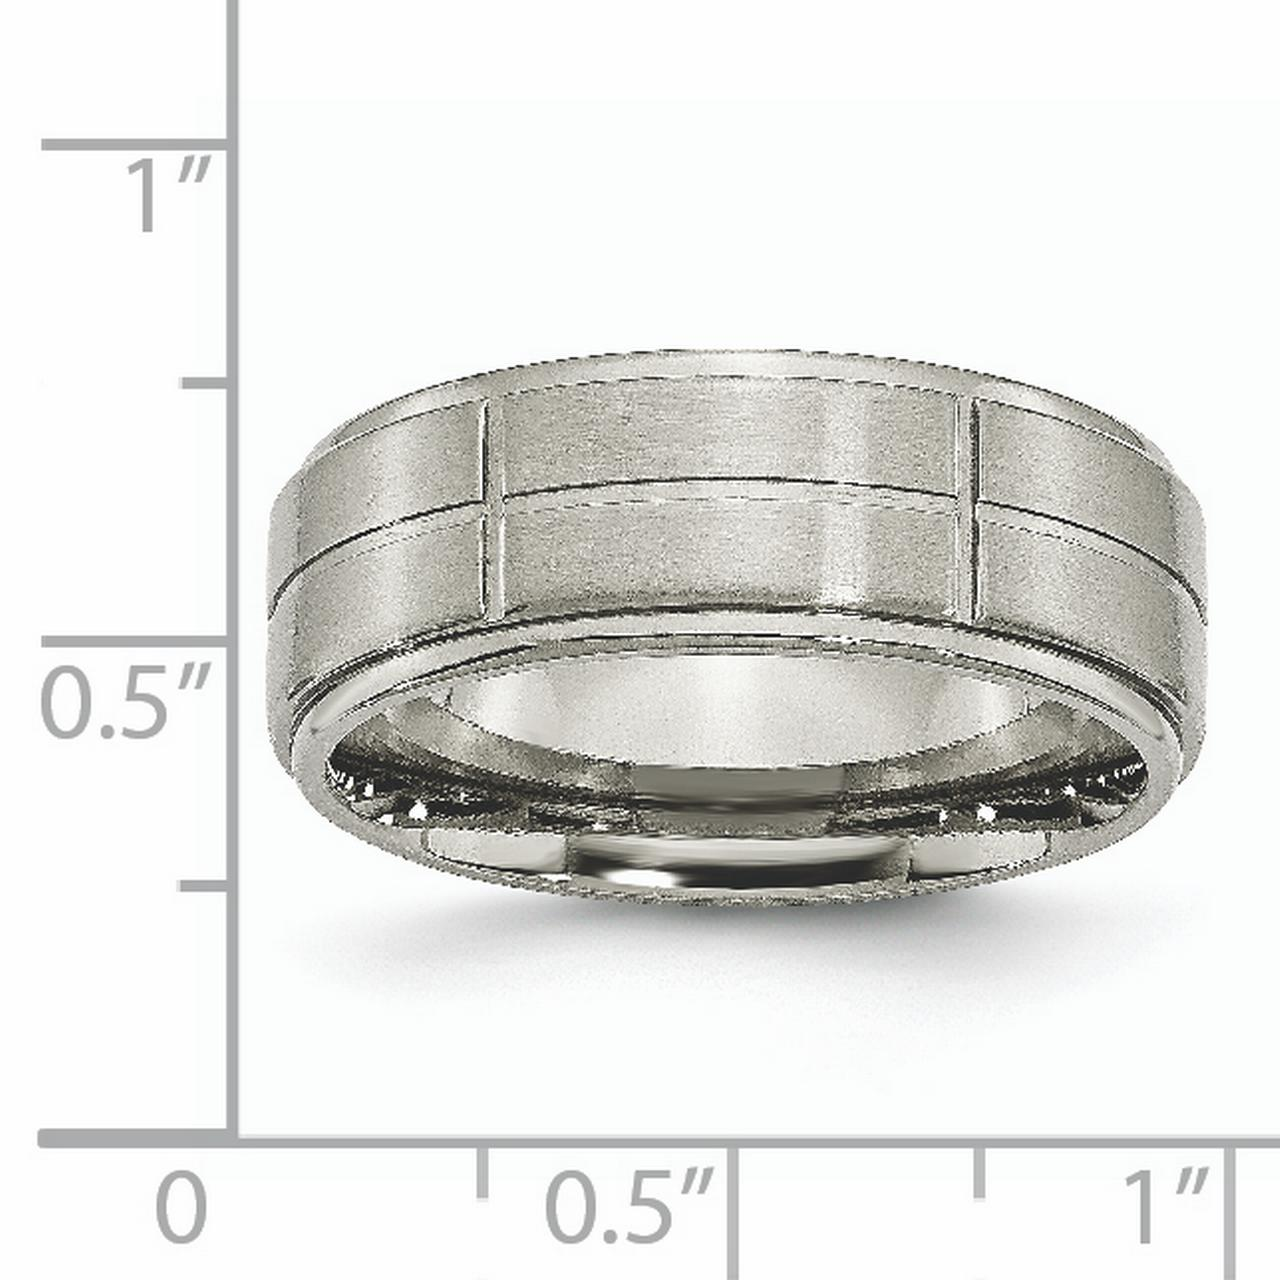 Bridal & Wedding Party Jewelry Jewelry & Watches Titanium Grooved Ridged Edge 8mm Brushed Wedding Ring Band Size 8.50 Fashion